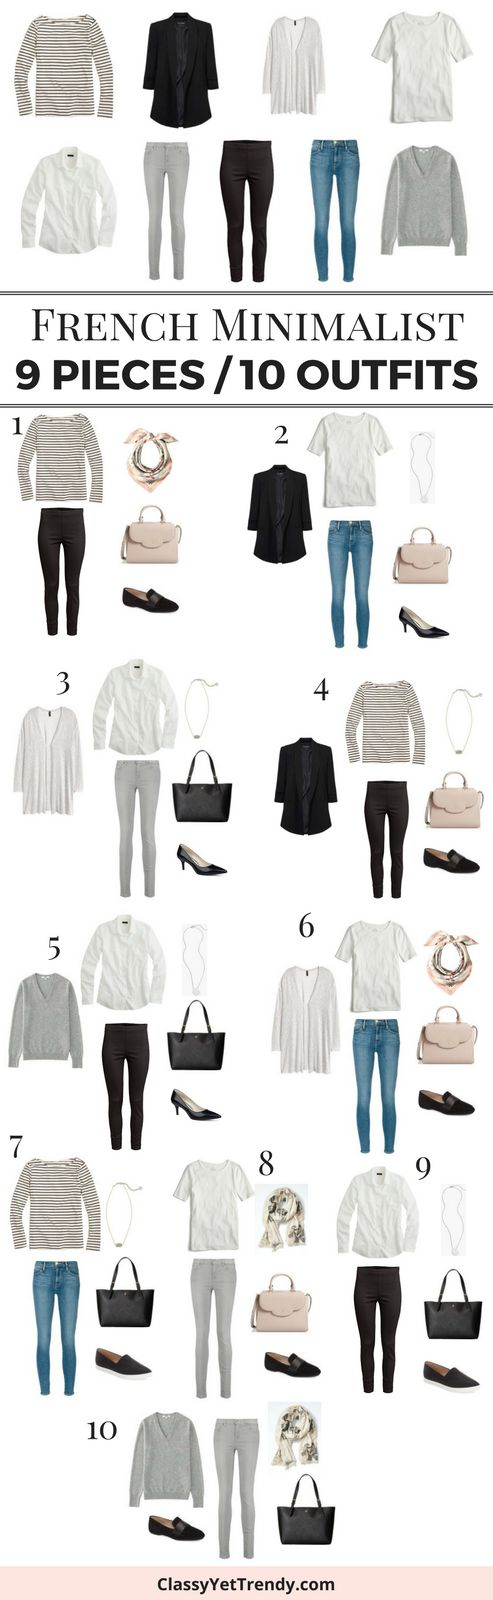 classyyettrendy.com wp-content uploads 2017 03 9-Pieces-10-Outfits-French-Minimalist-Style.png